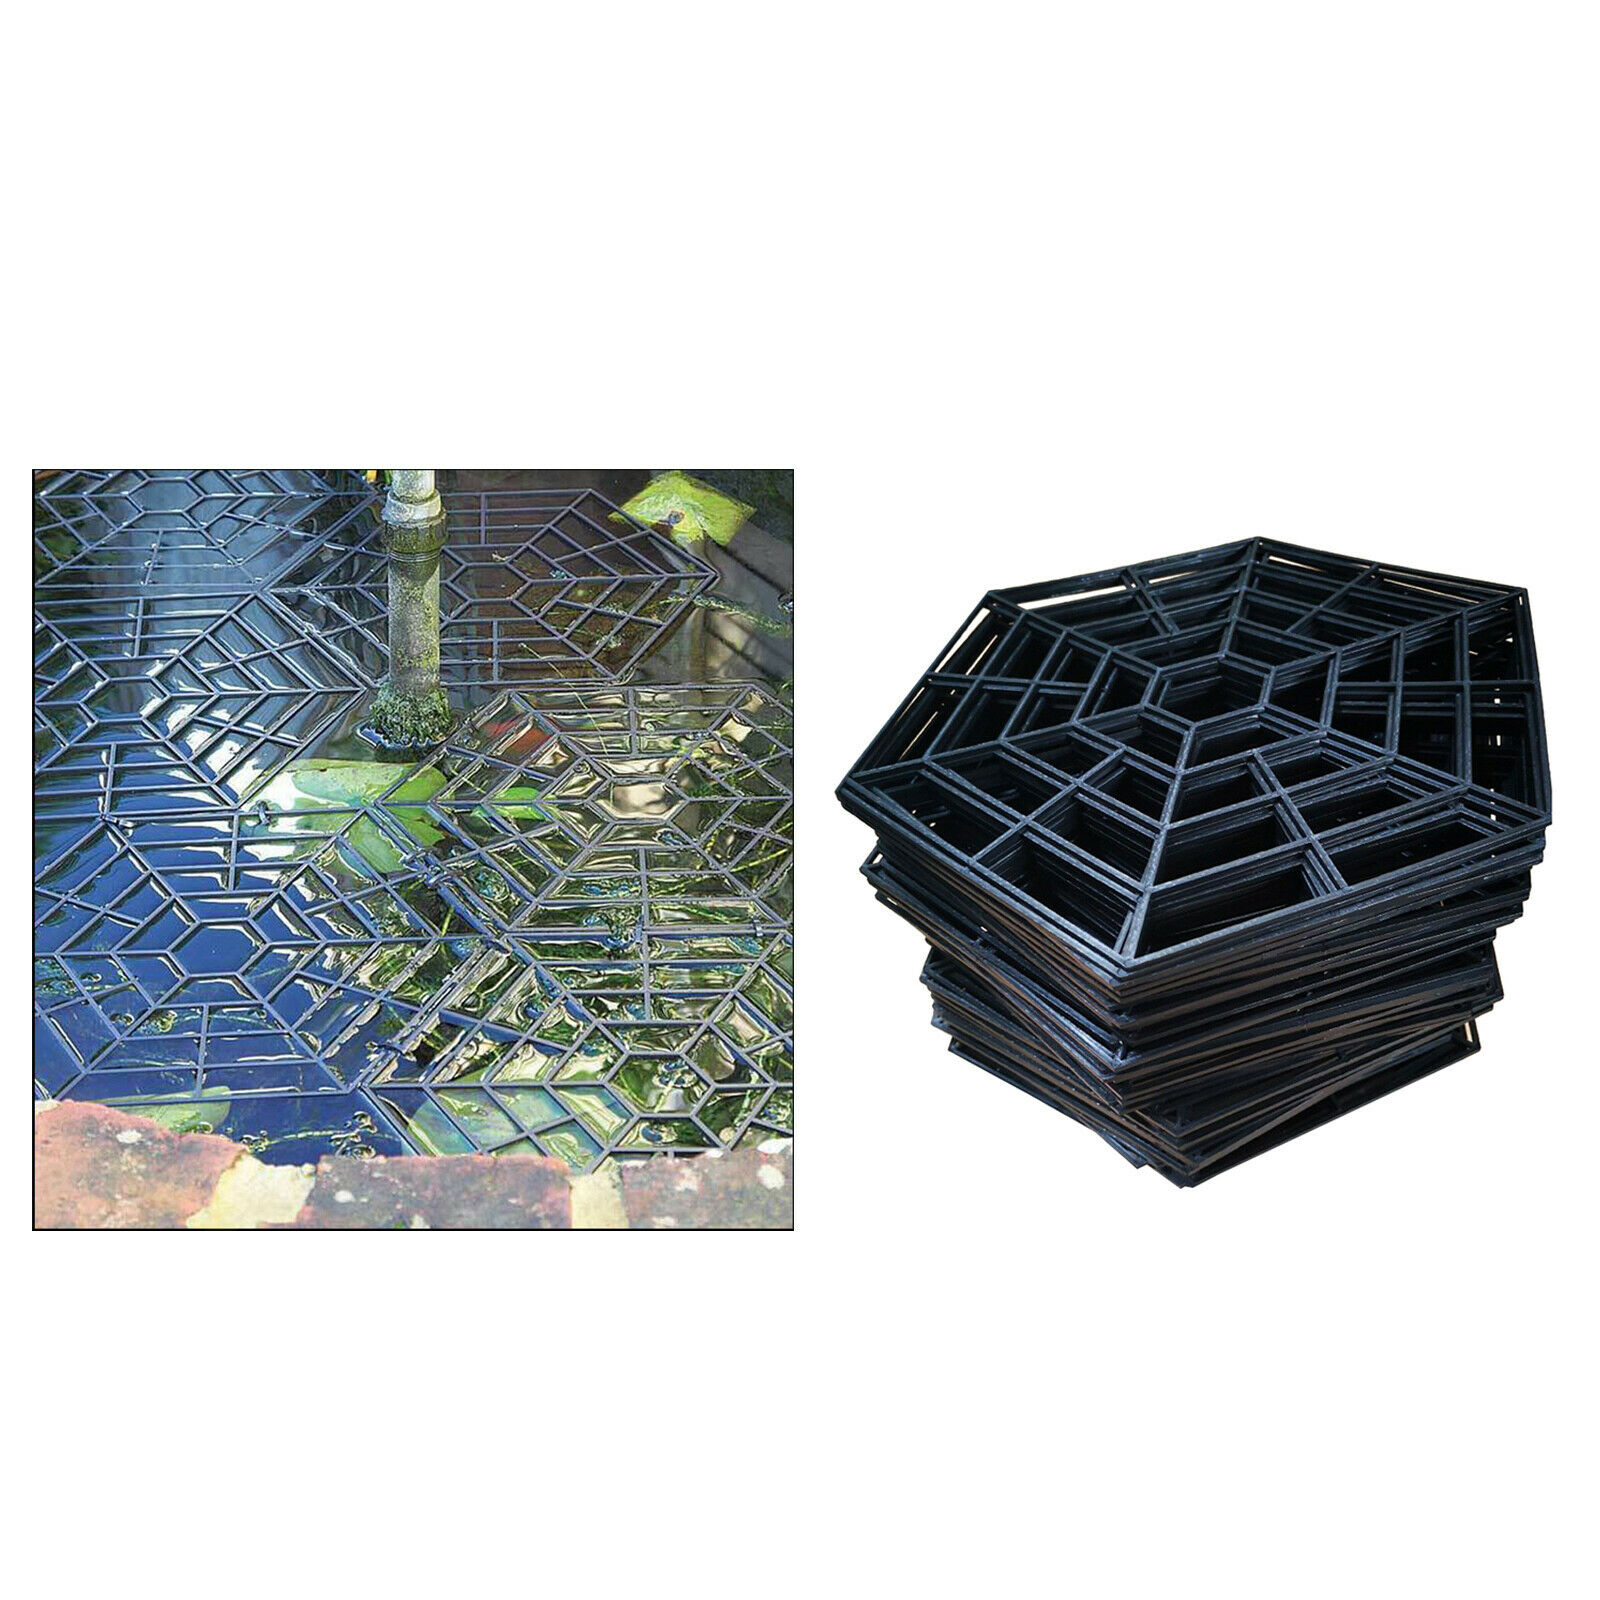 20pcs Fish Guard Grid Protective Floating Net Pond Protector Garden Supplies